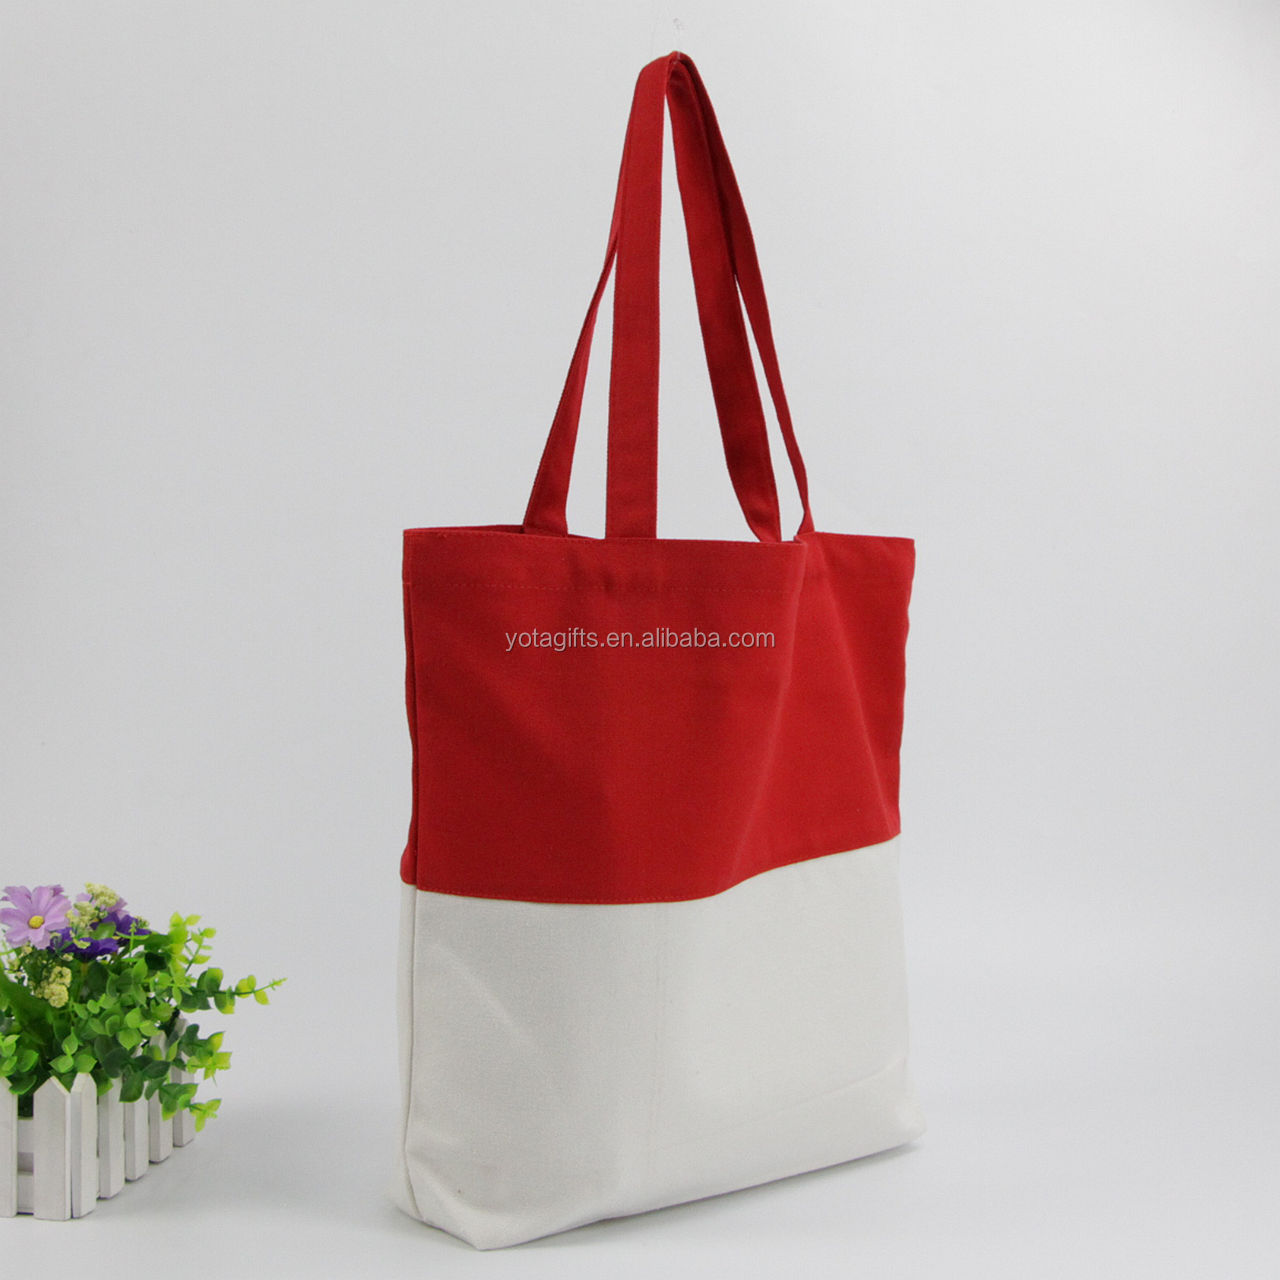 Cheap price natrual and red standard size cotton tote bag